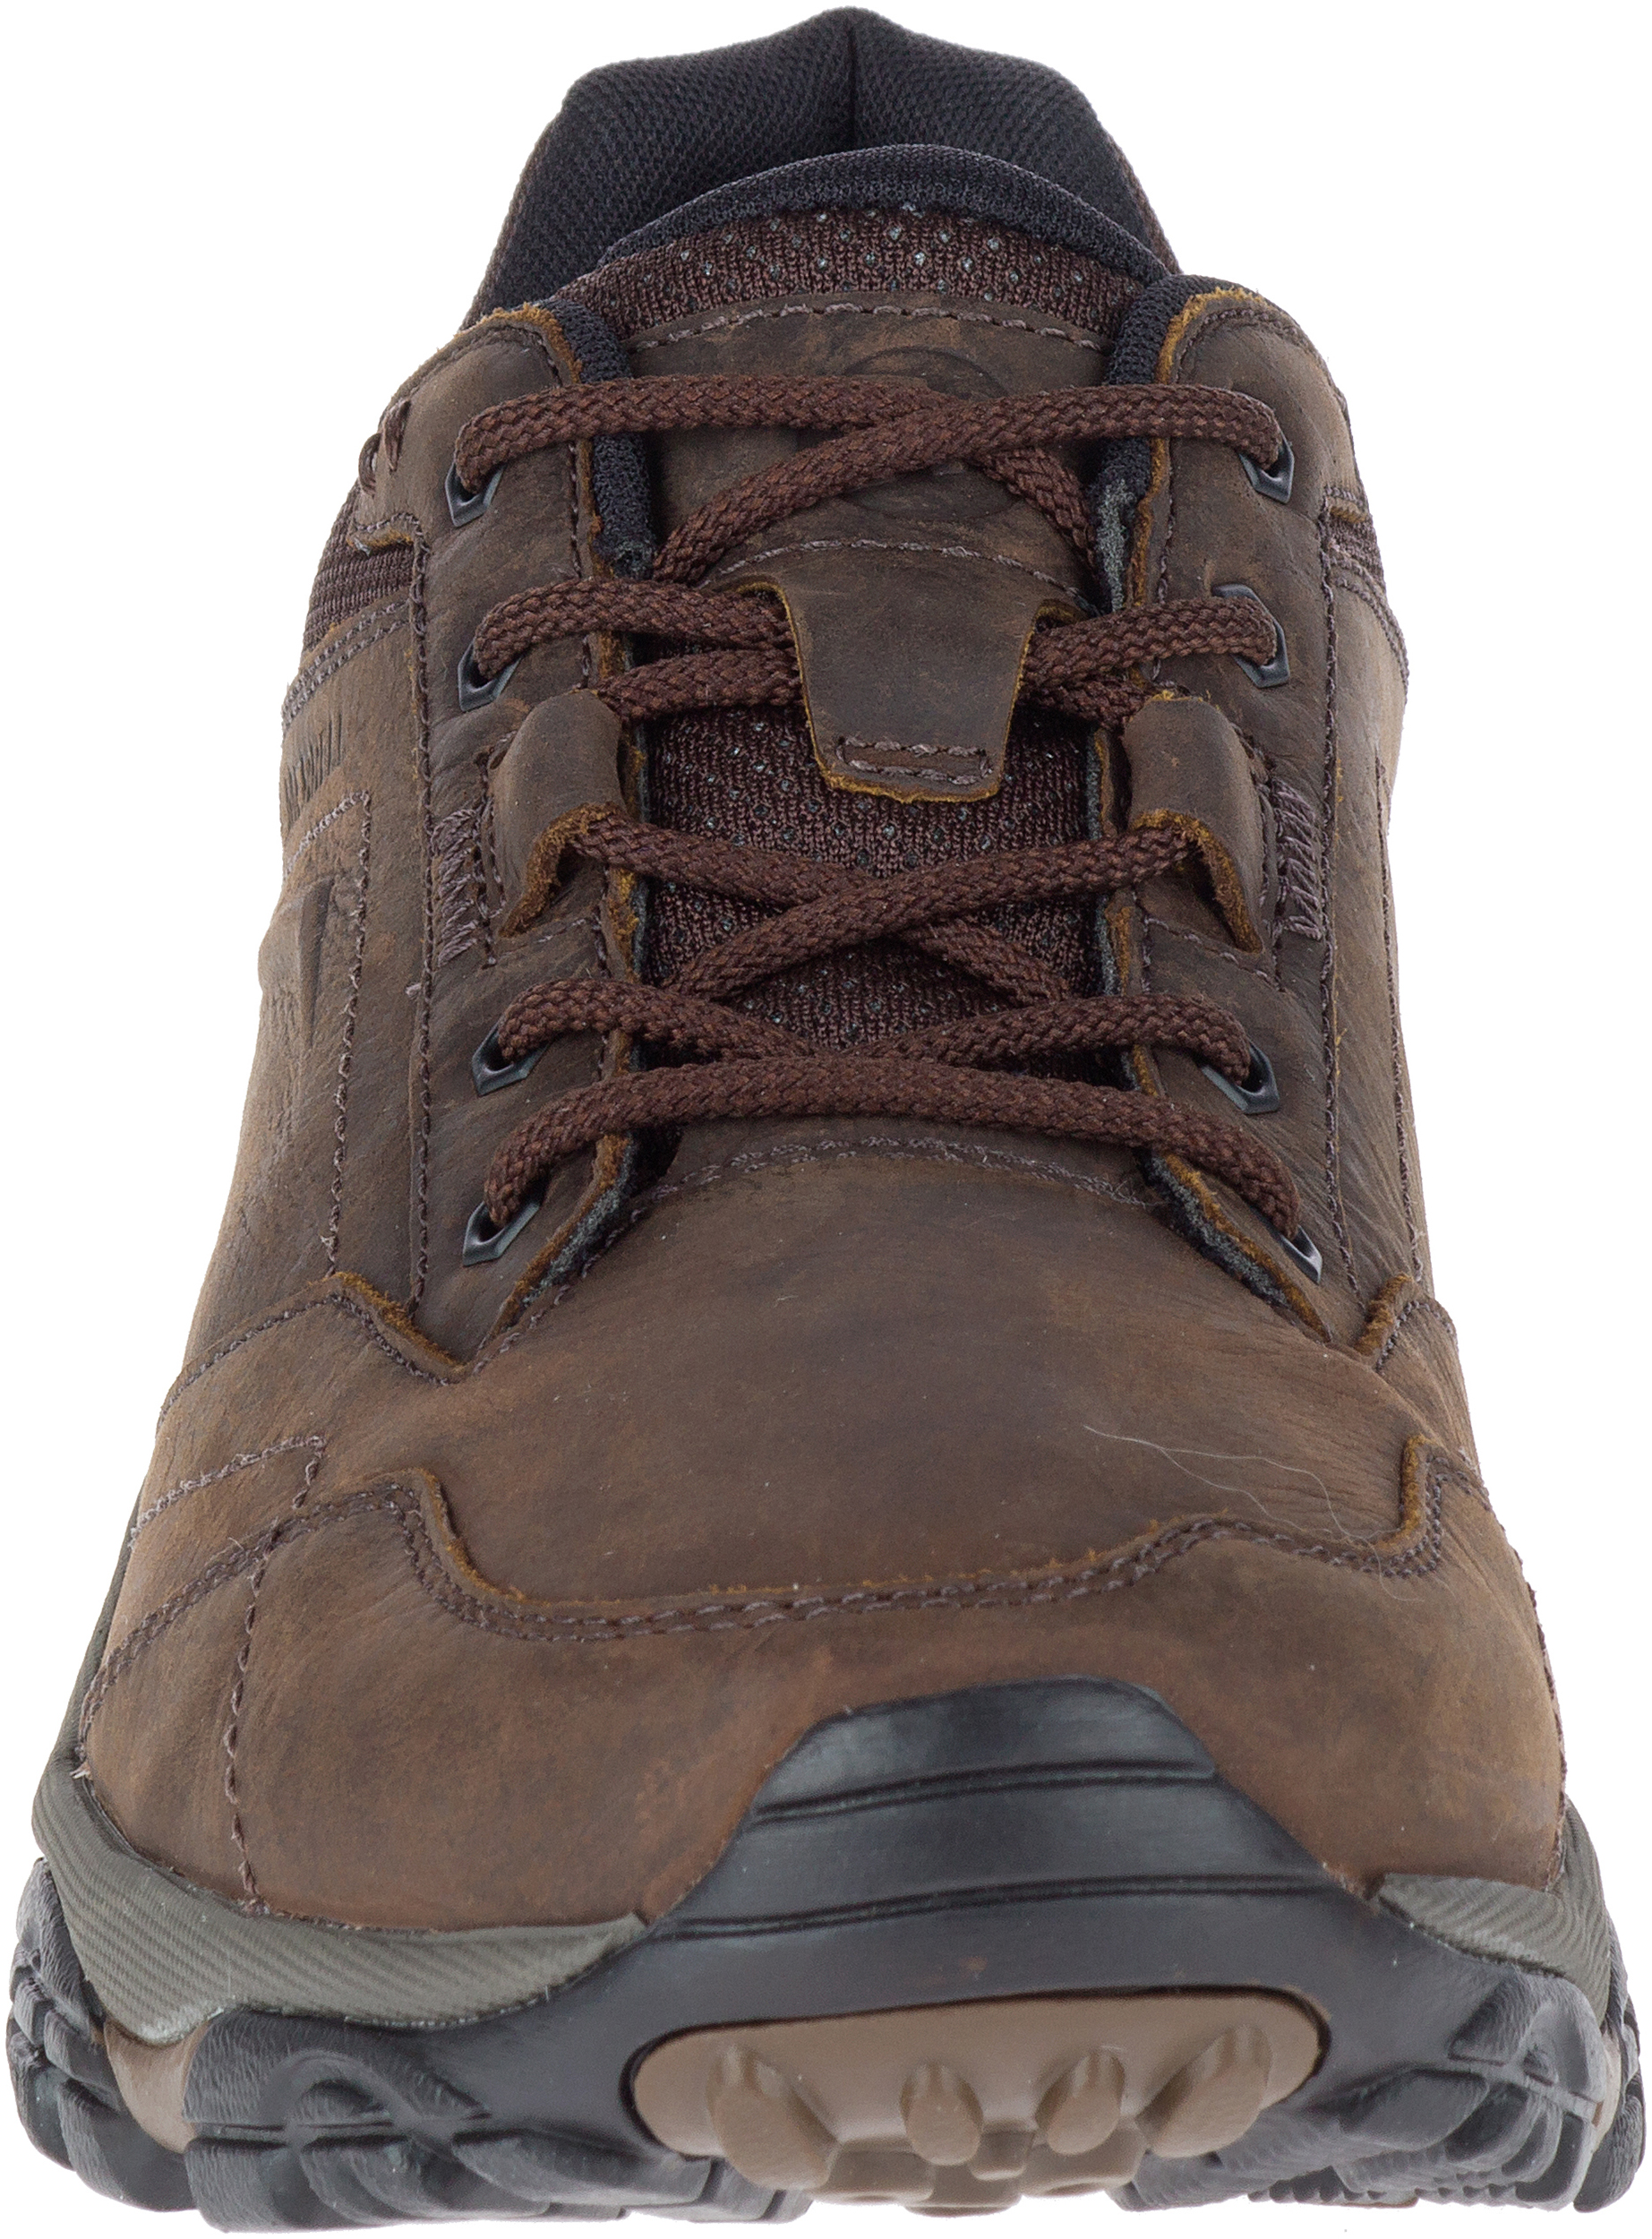 Lace mChaussure Lace mChaussure Moab Merrell Adventure Merrell Moab Adventure Merrell EI9WHD2